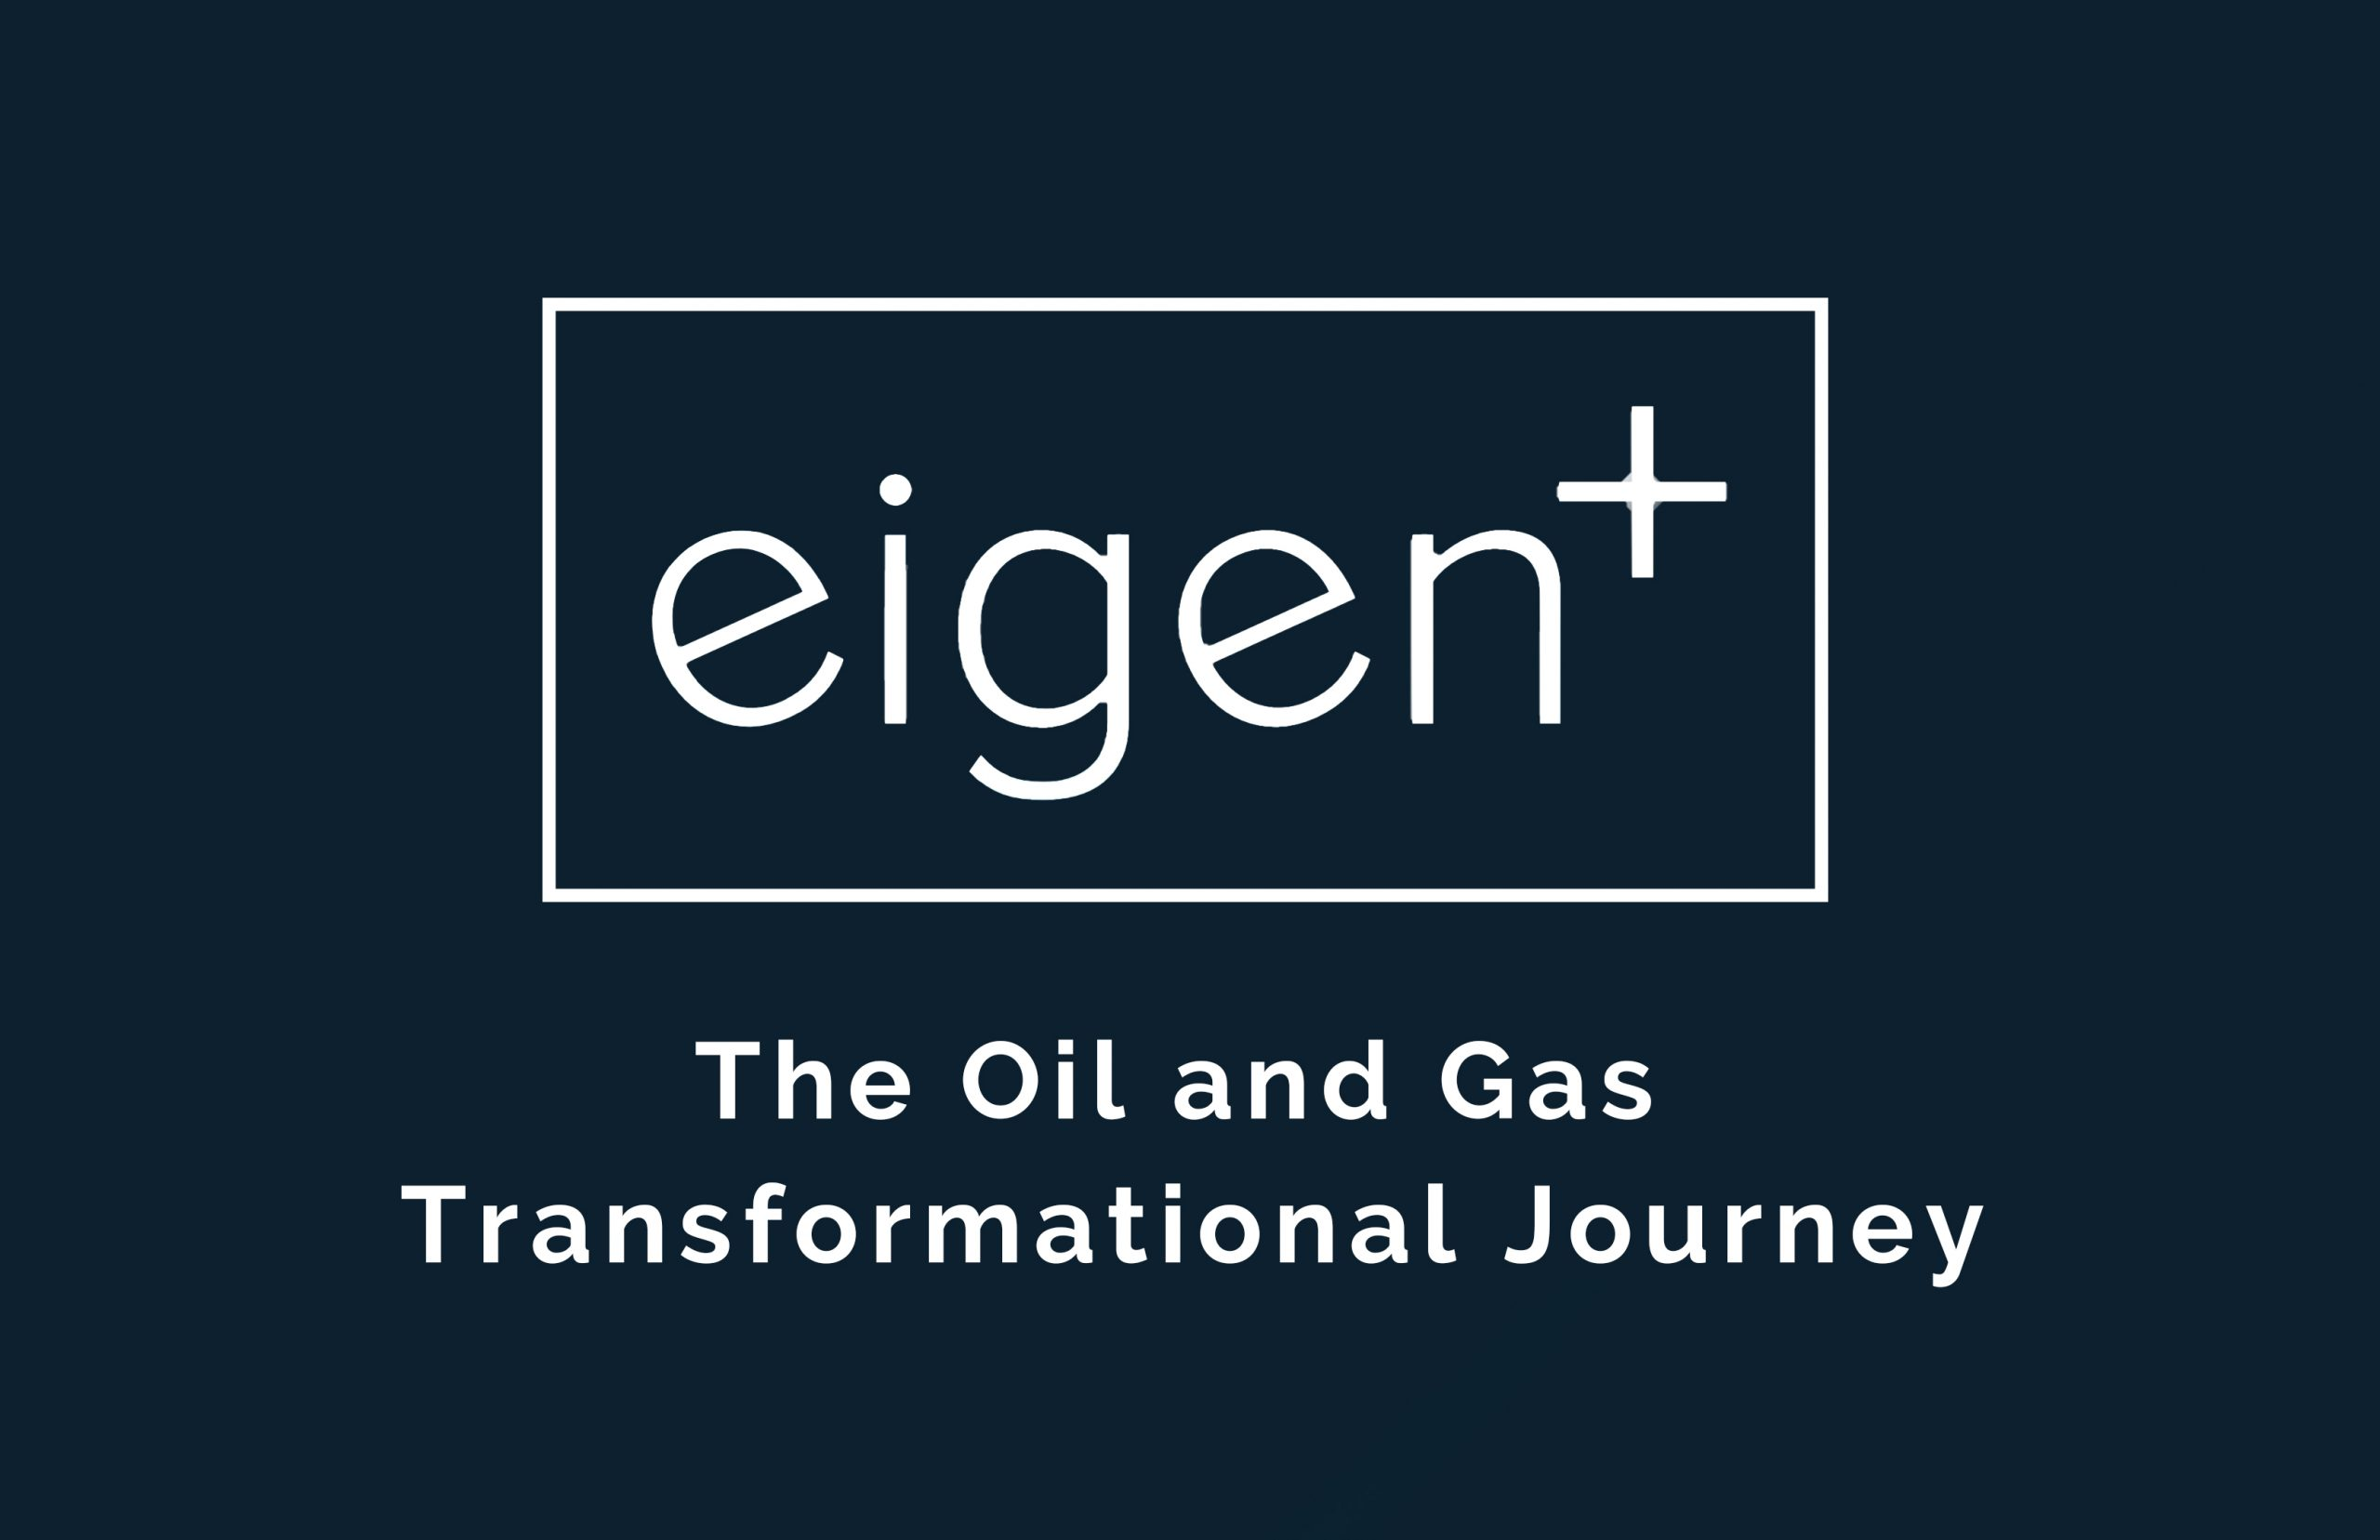 The Oil and Gas Transformational Journey - Eigen